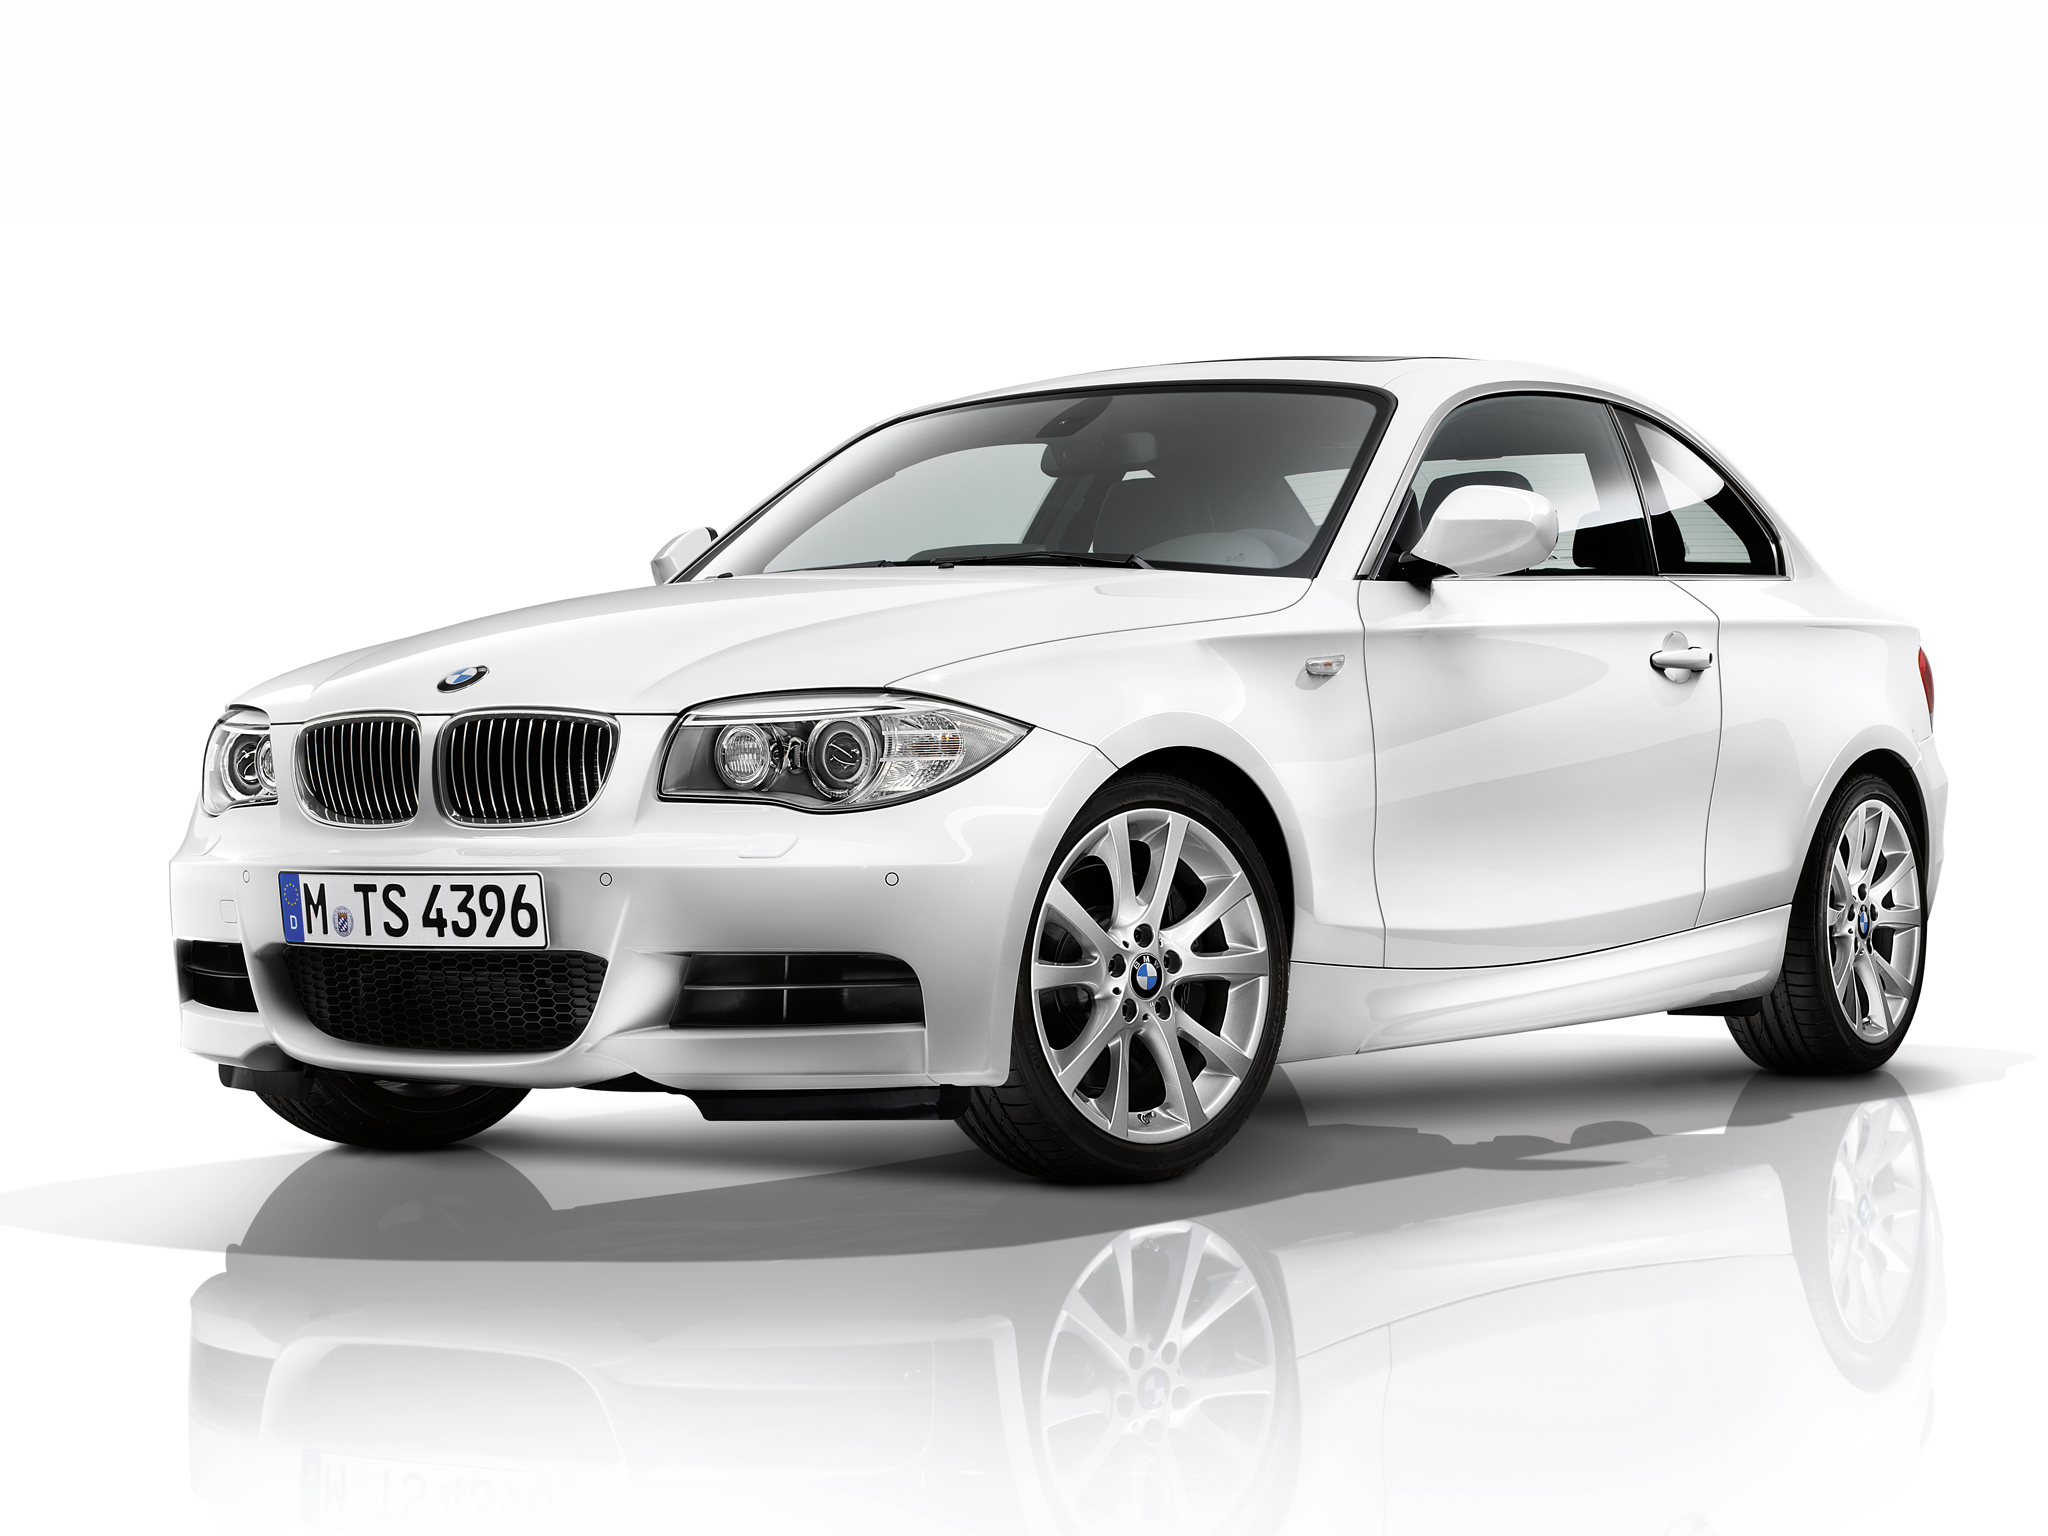 BMW 135i Coupe E82 Wallpapers Car wallpapers HD 2048x1536